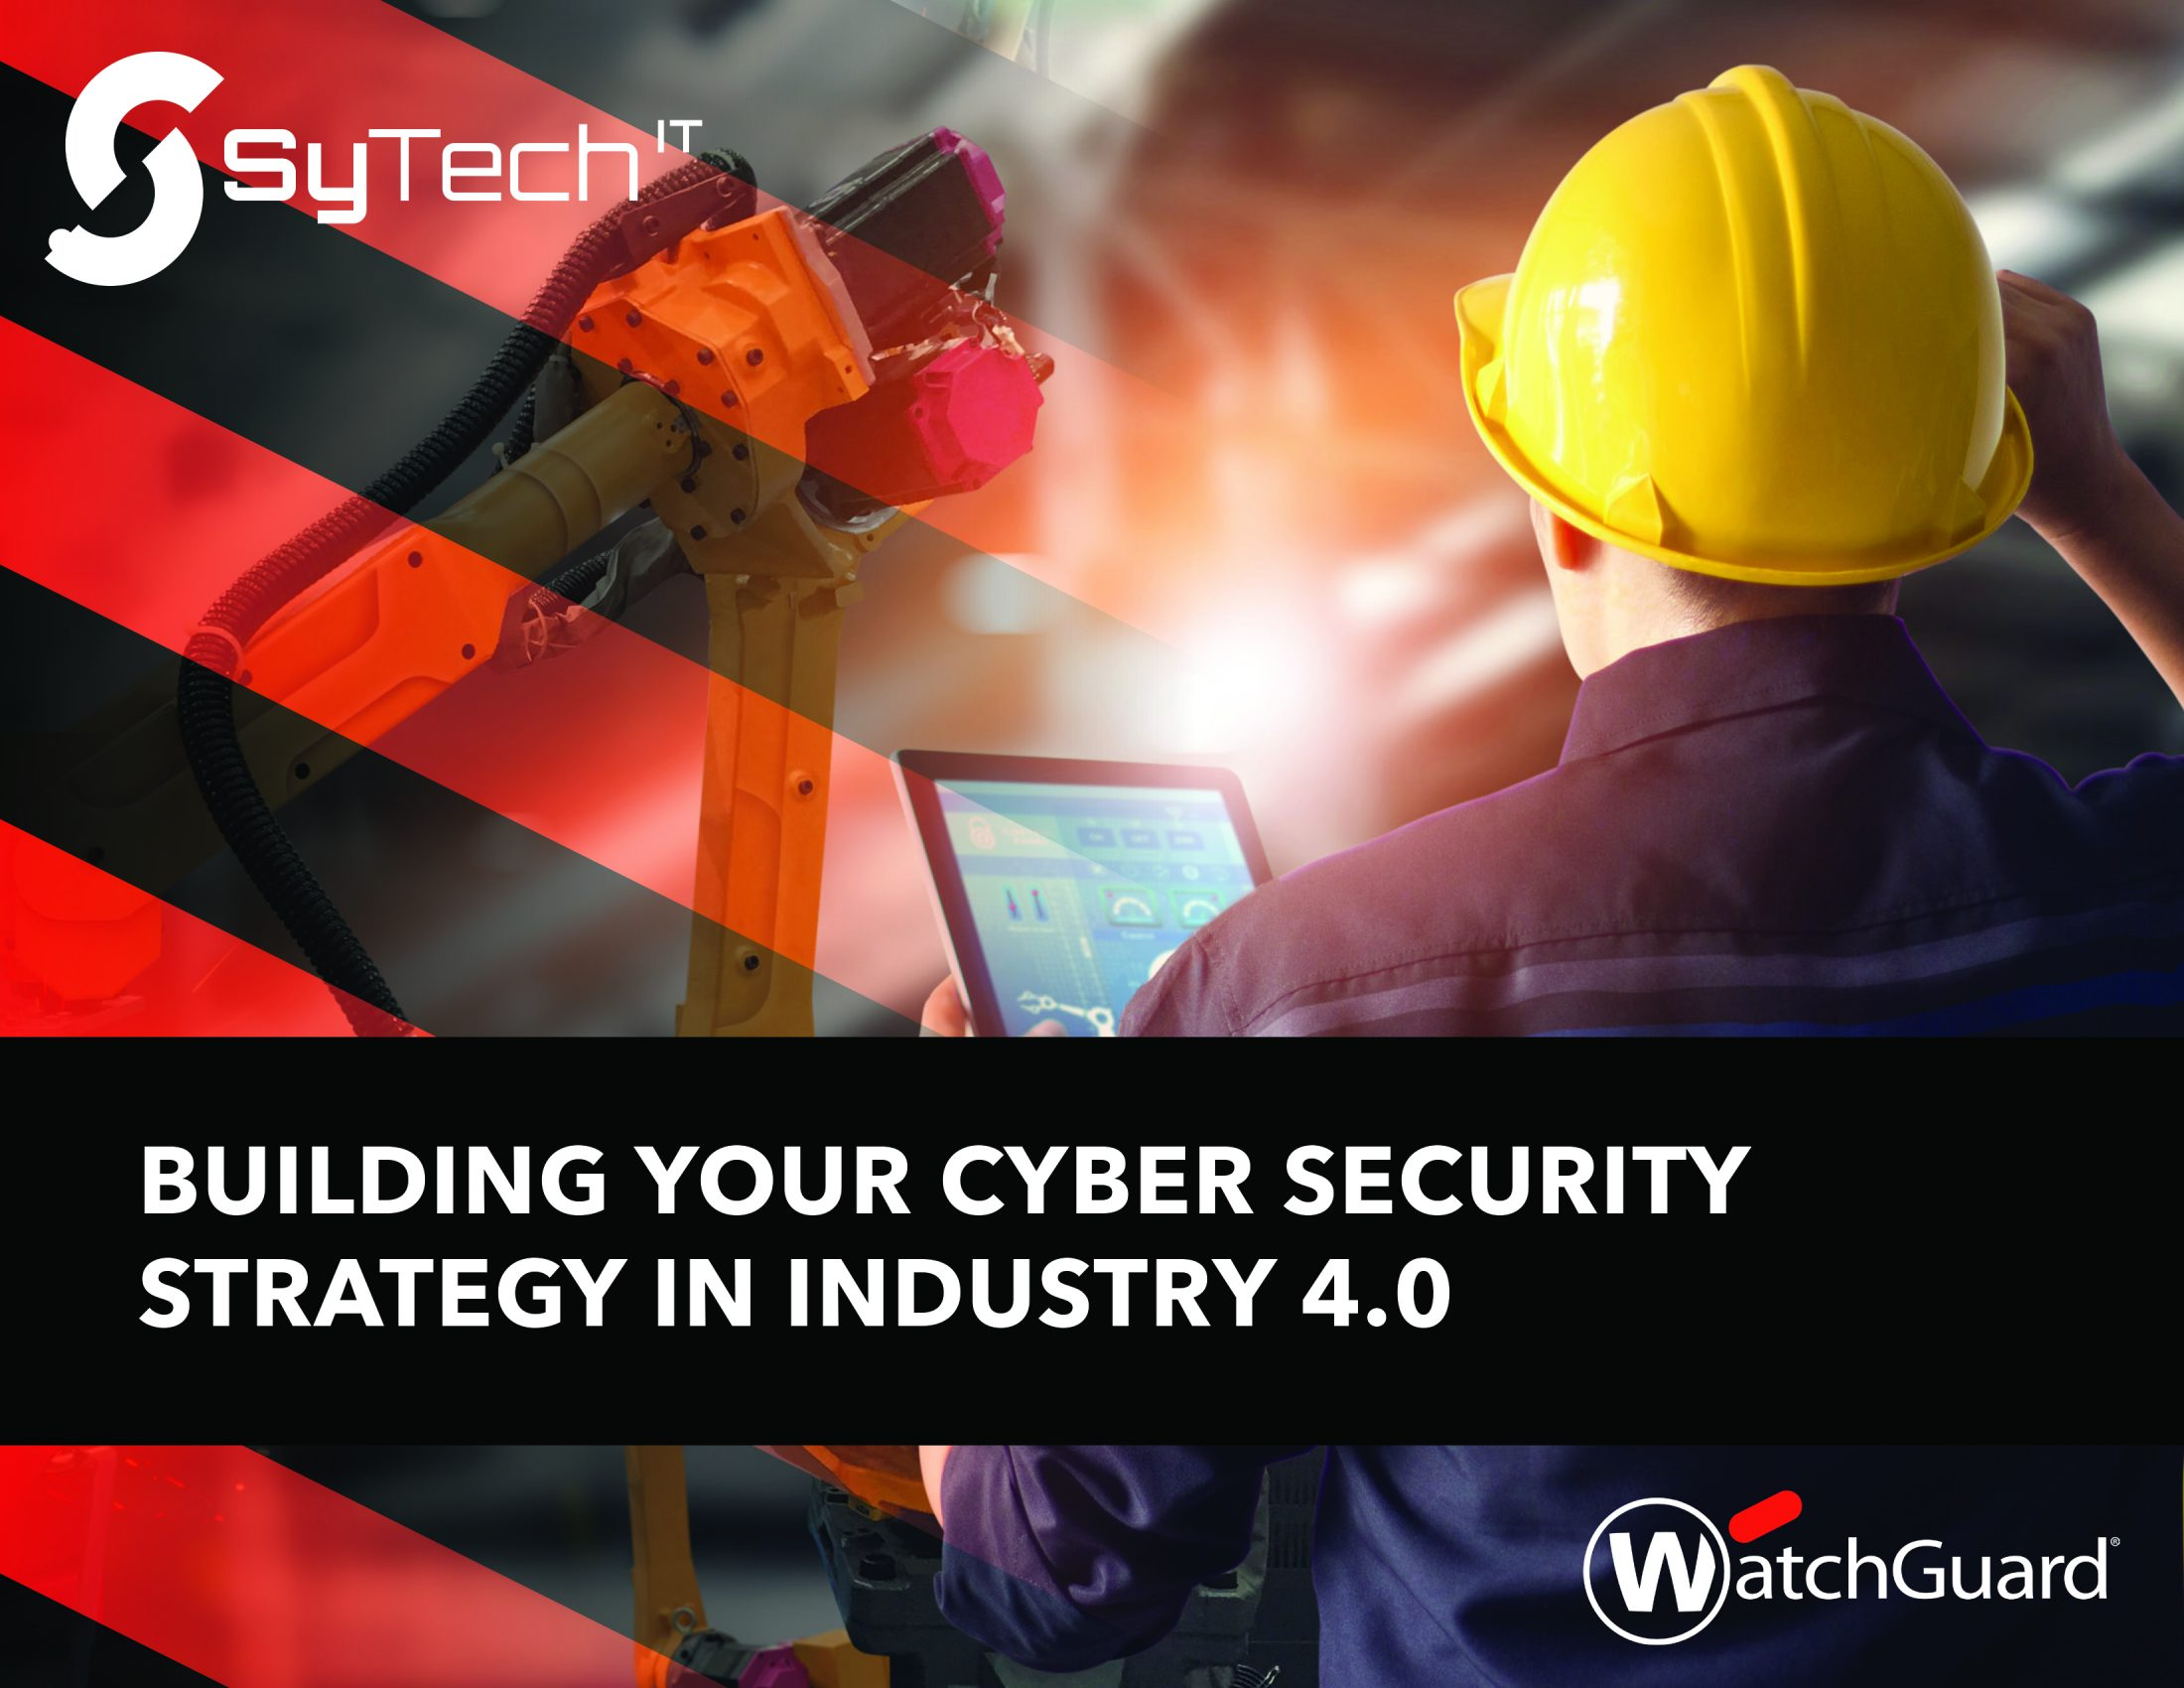 IOT Manufacturing Industry 4.0 Cyber Security